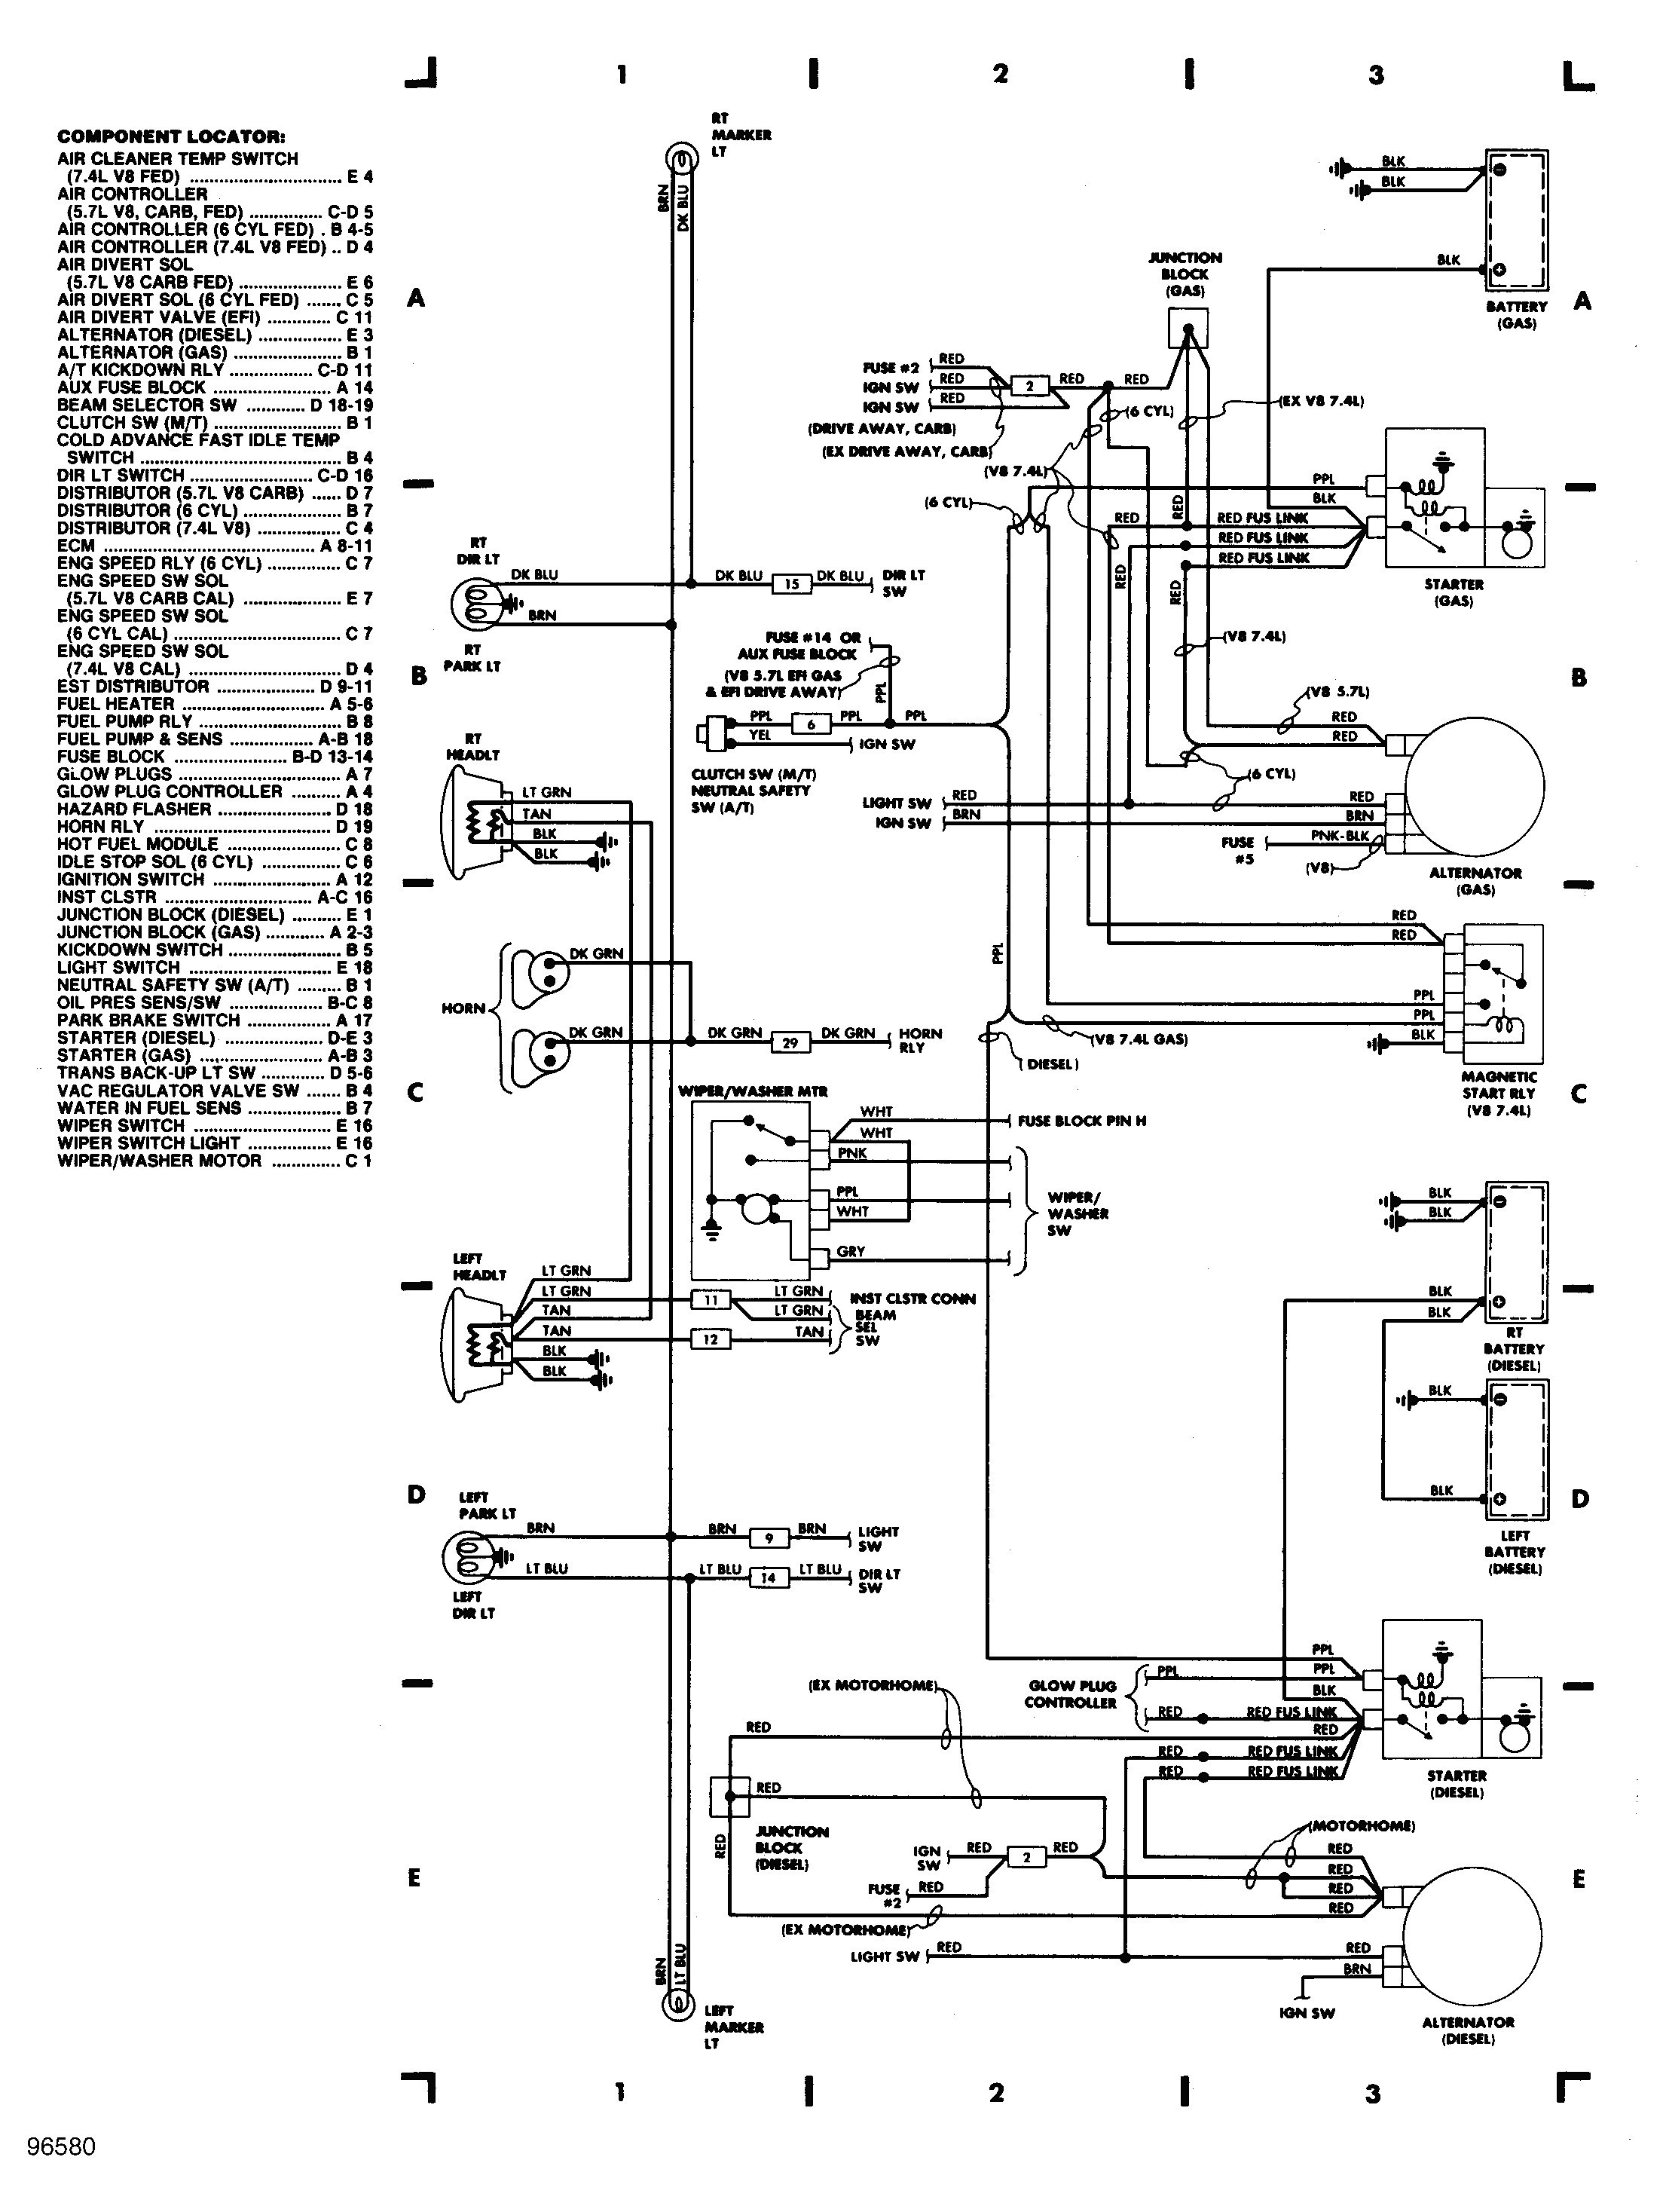 Switch Wiring Diagram Awesome 4l60e Wiring Harness Diagram New For Neutral  Safety Also